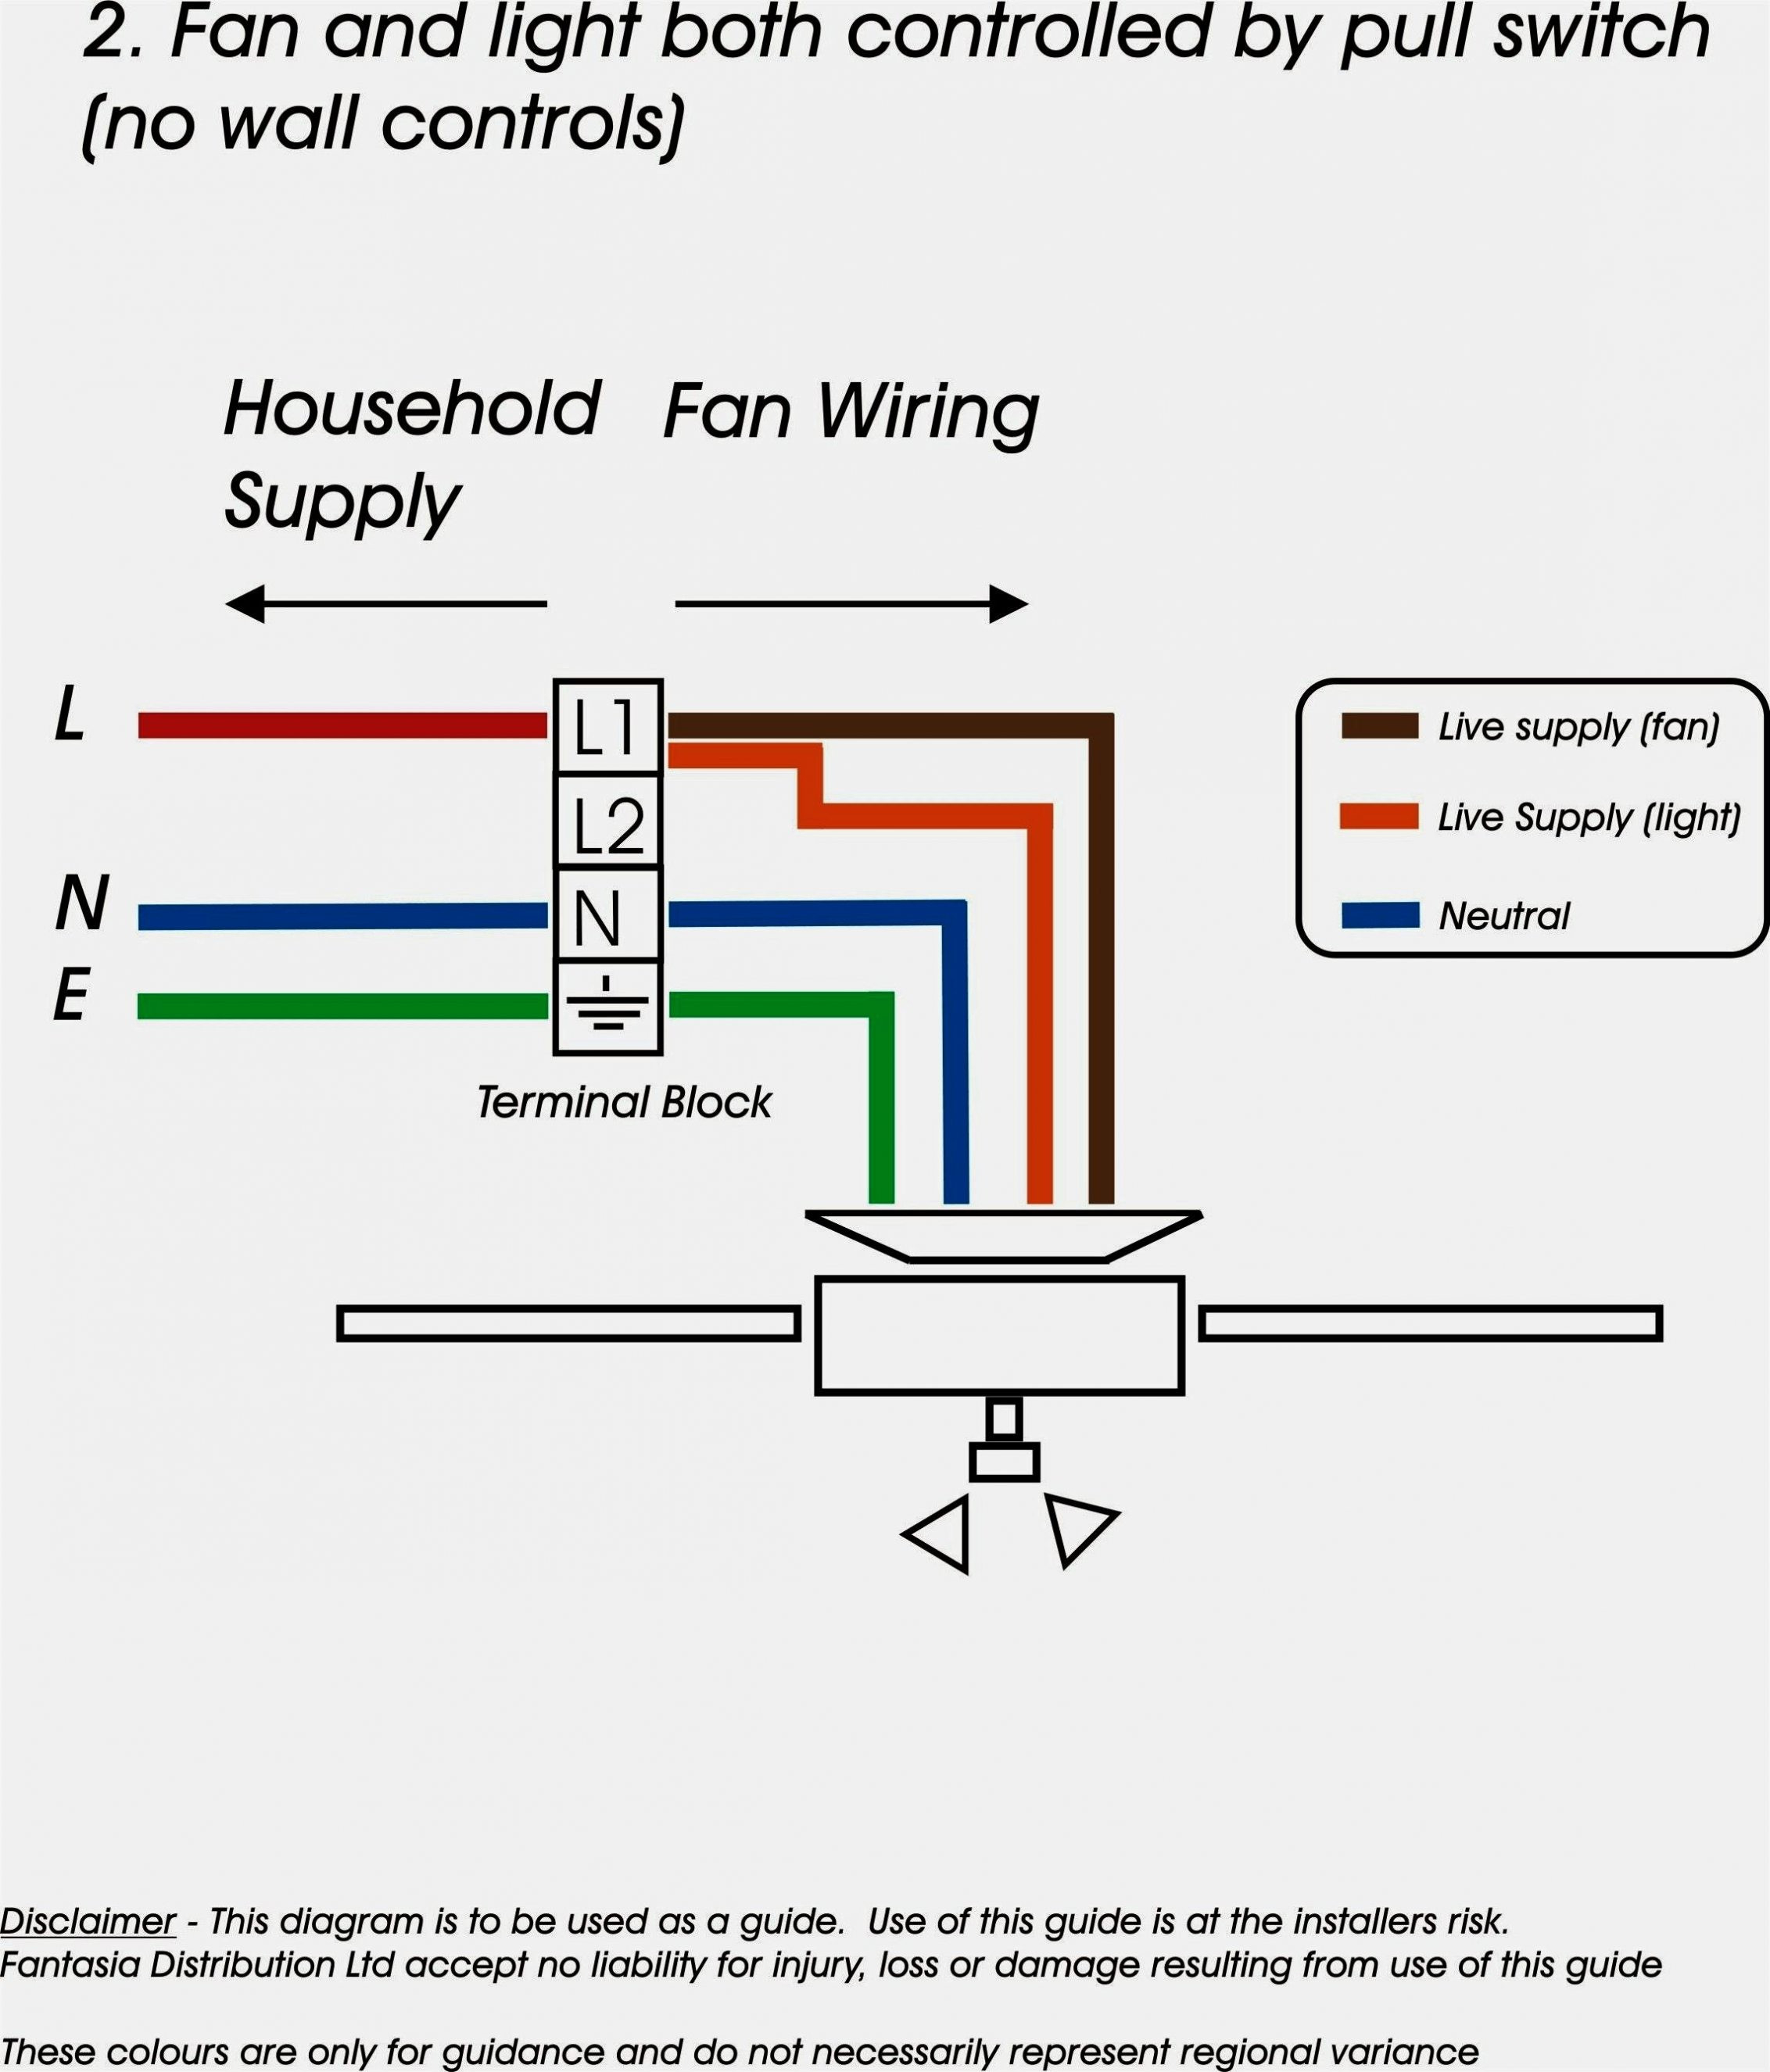 ceiling fan wiring diagram 3 speed Collection-Ceiling Fan Pull Chain Switch Wiring Diagram Best 3 Speed New Hunter 18 5-d